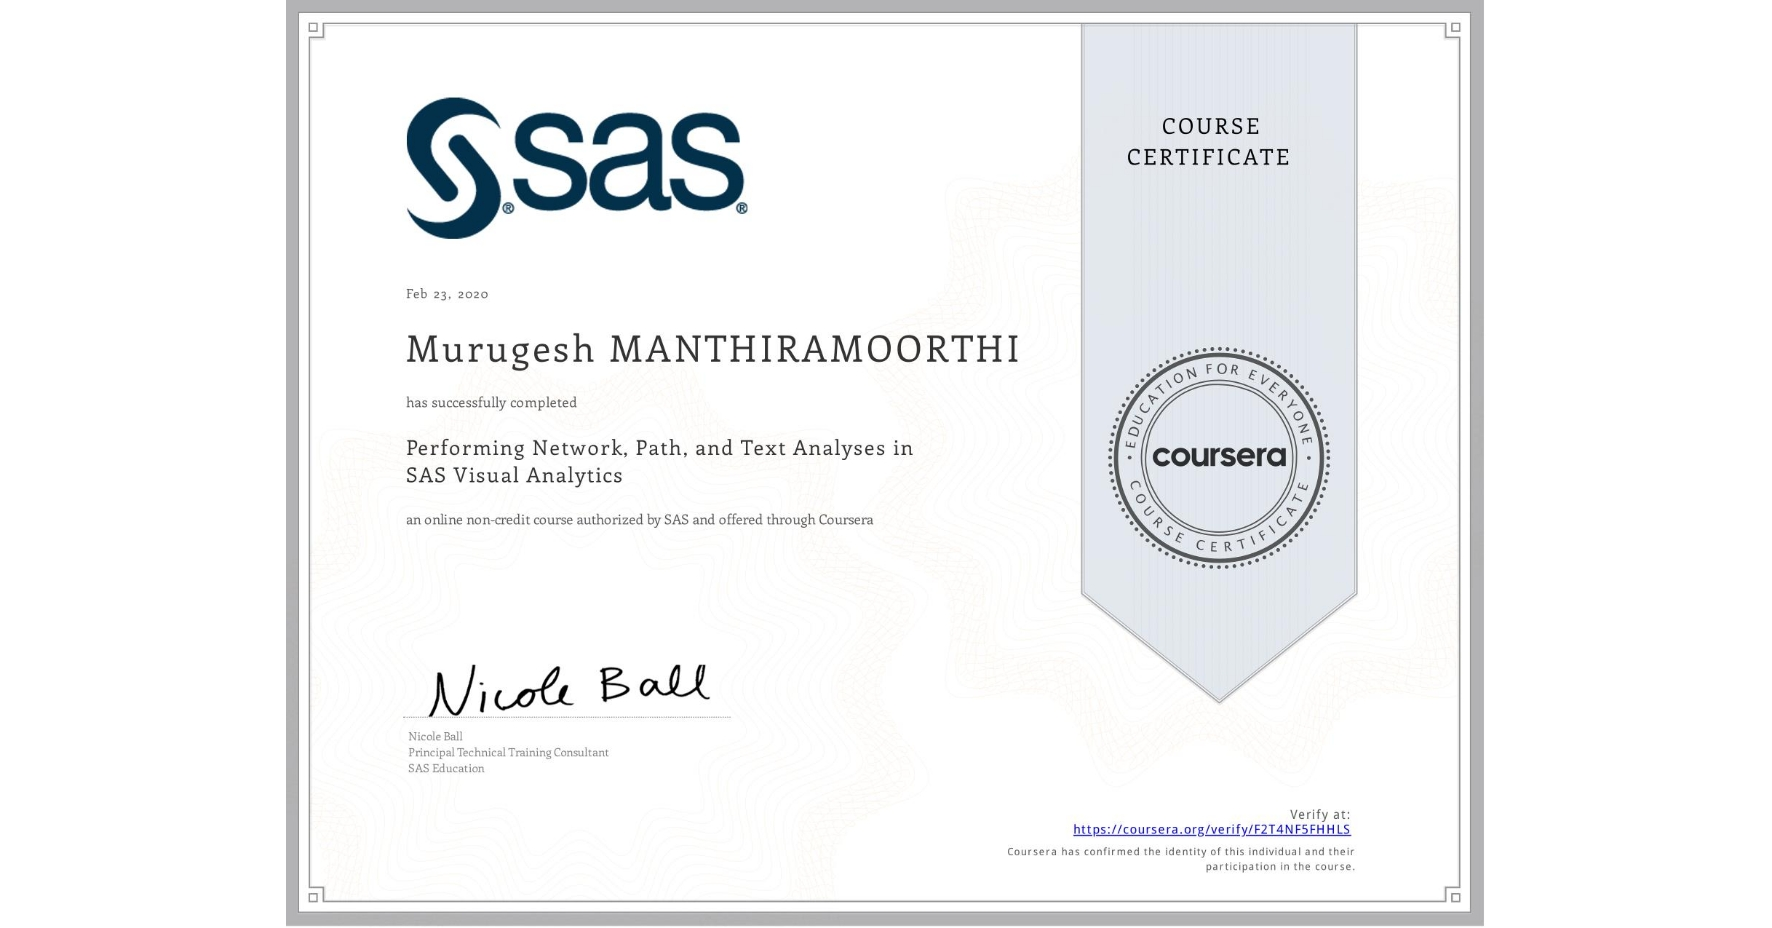 View certificate for Murugesh Manthiramoorthi, Performing Network, Path, and Text Analyses in SAS Visual Analytics, an online non-credit course authorized by SAS and offered through Coursera